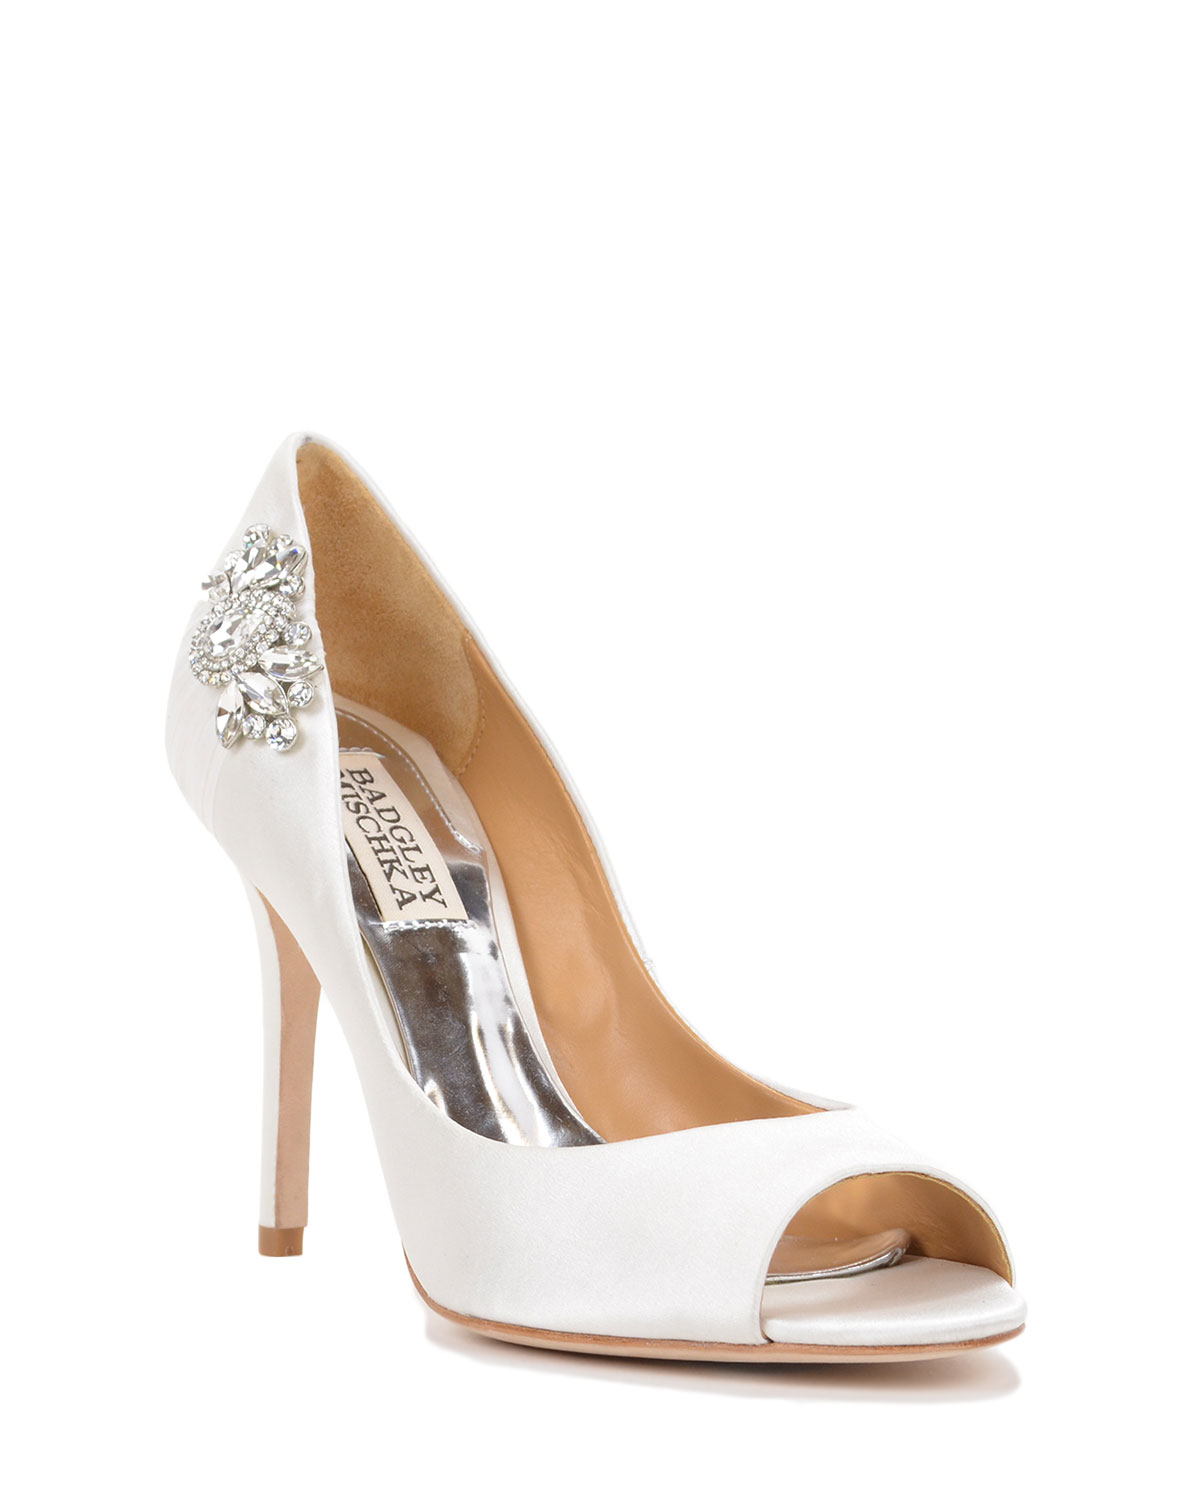 badgley mischka embellished satin evening shoe in